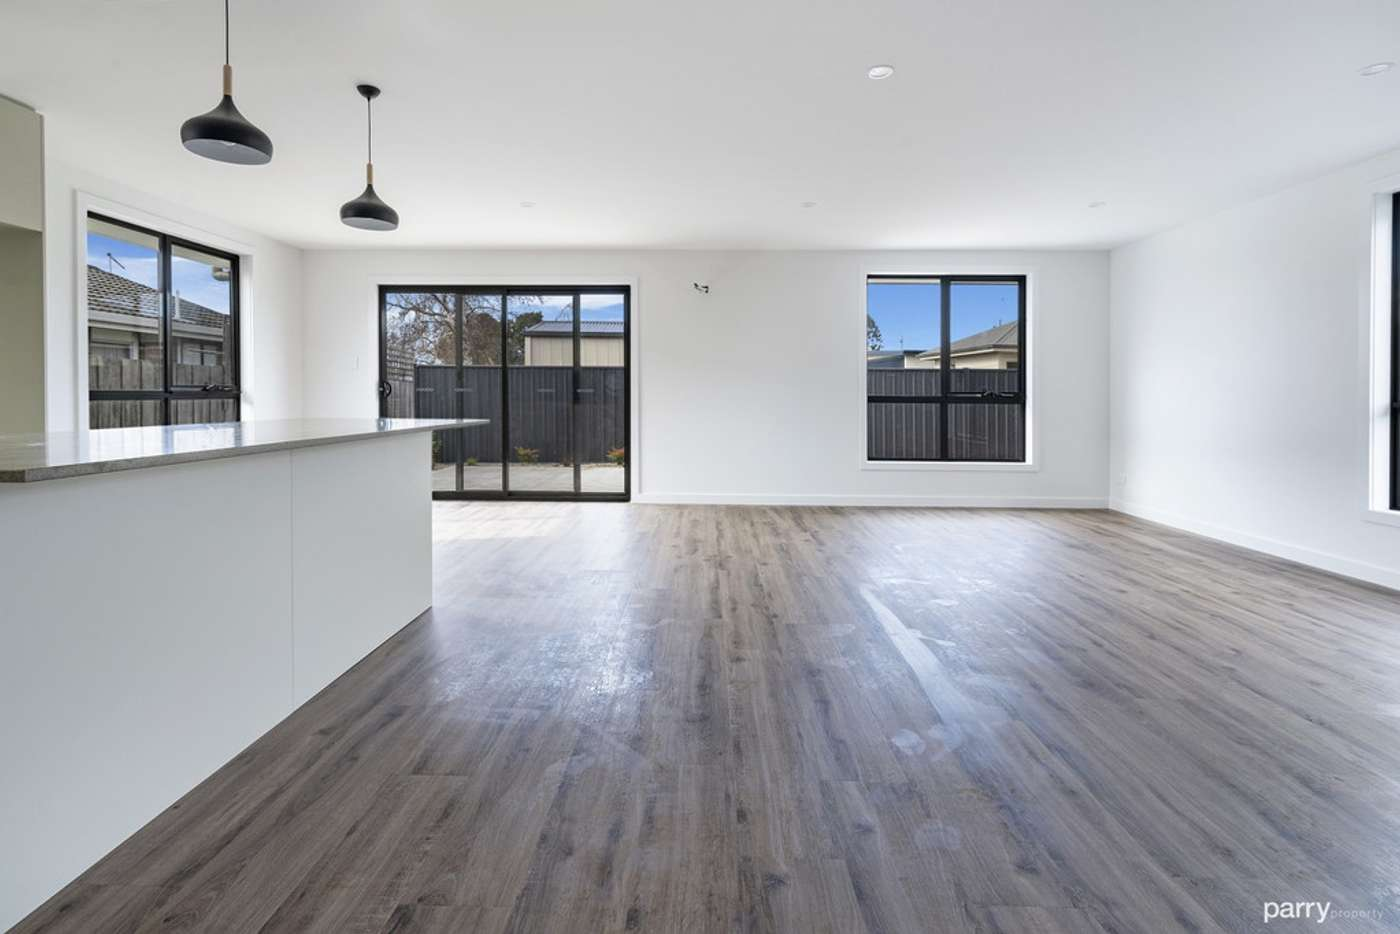 Sixth view of Homely townhouse listing, Unit 2, 22 Frederick Street, Perth TAS 7300